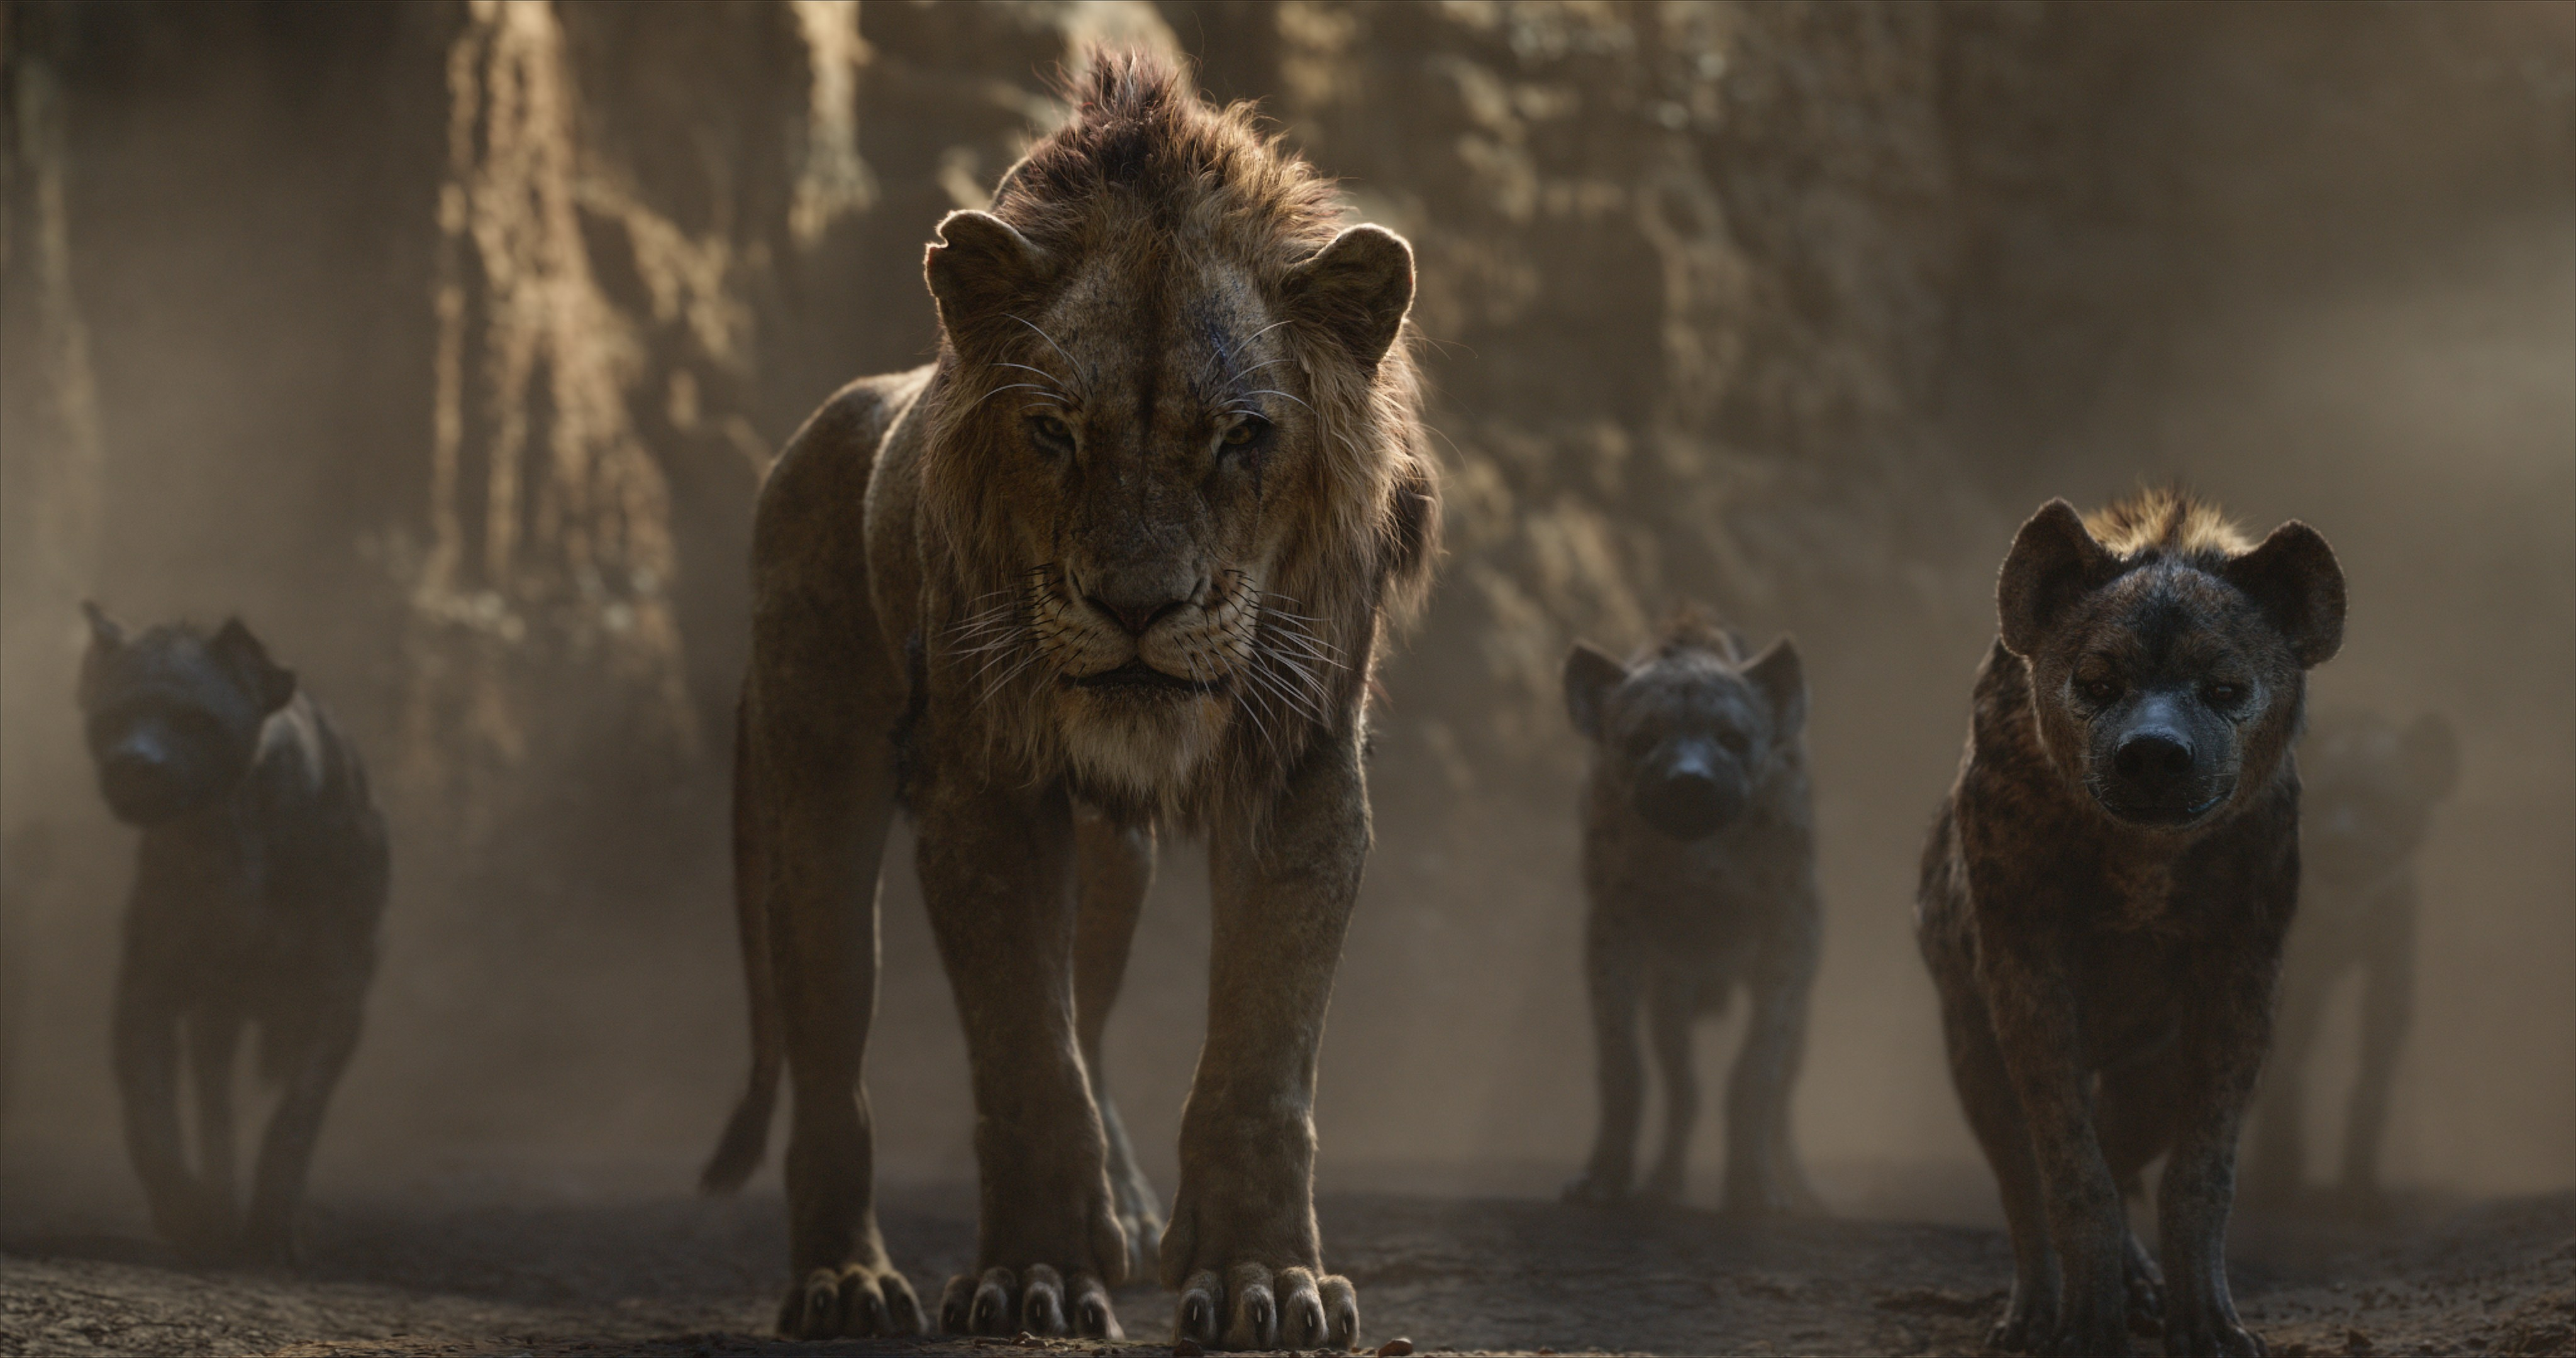 The Lion King 2019 Scar Hd Movies 4k Wallpapers Images Backgrounds Photos And Pictures